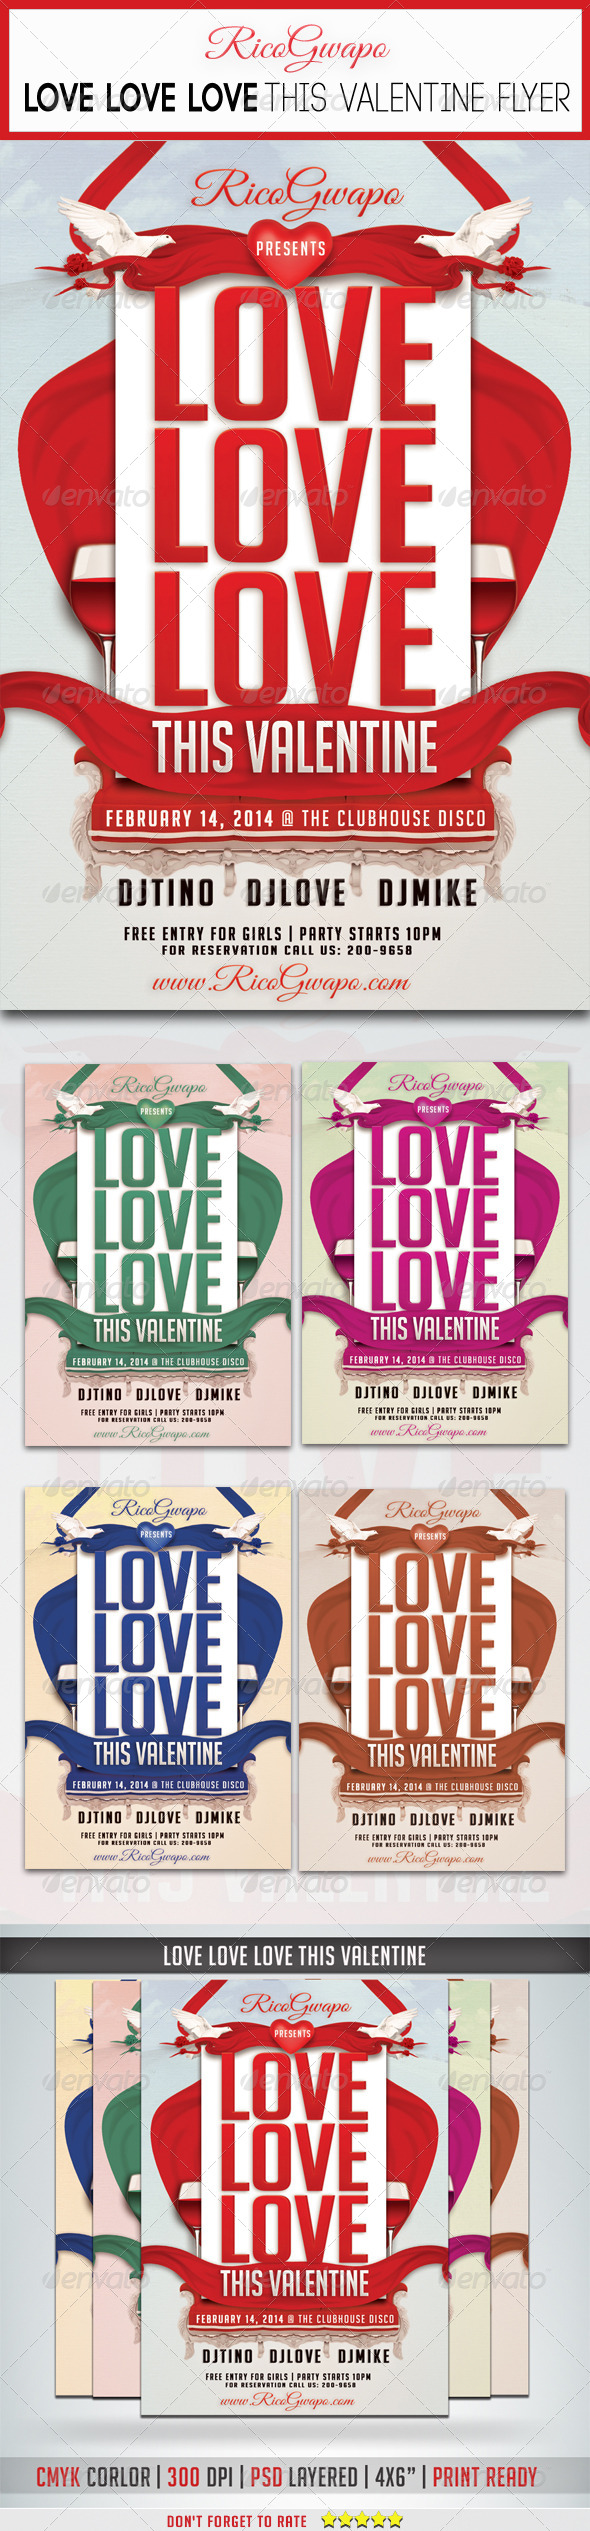 GraphicRiver Love Love Love This Valentine Flyer Template 6663655